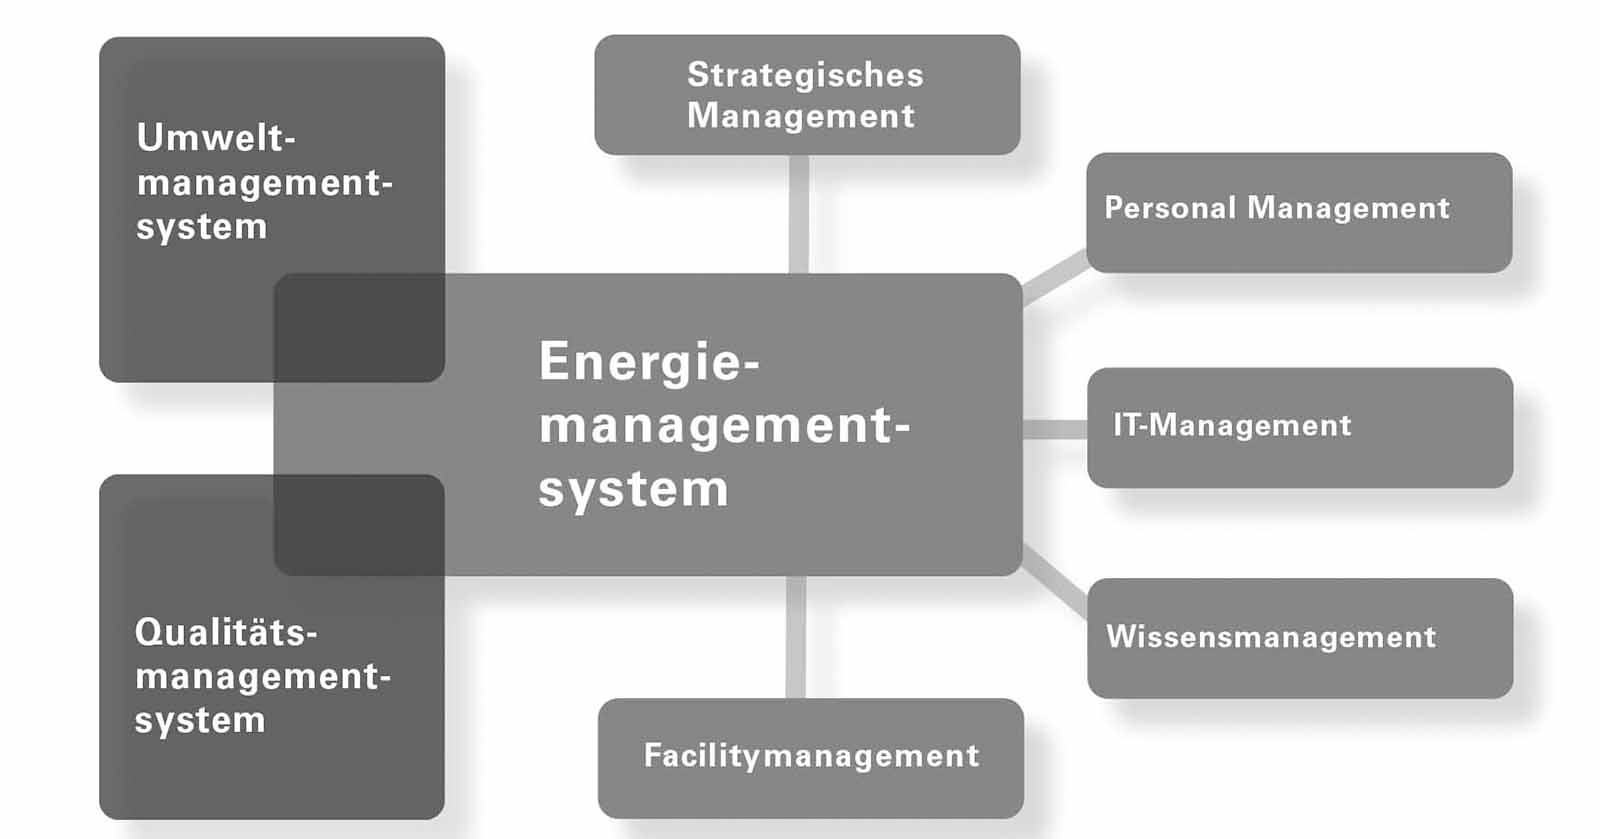 Integration des Energiemanagementsystems in andere Managementsysteme (z. B.: ISO 9001 oder ISO 14001)